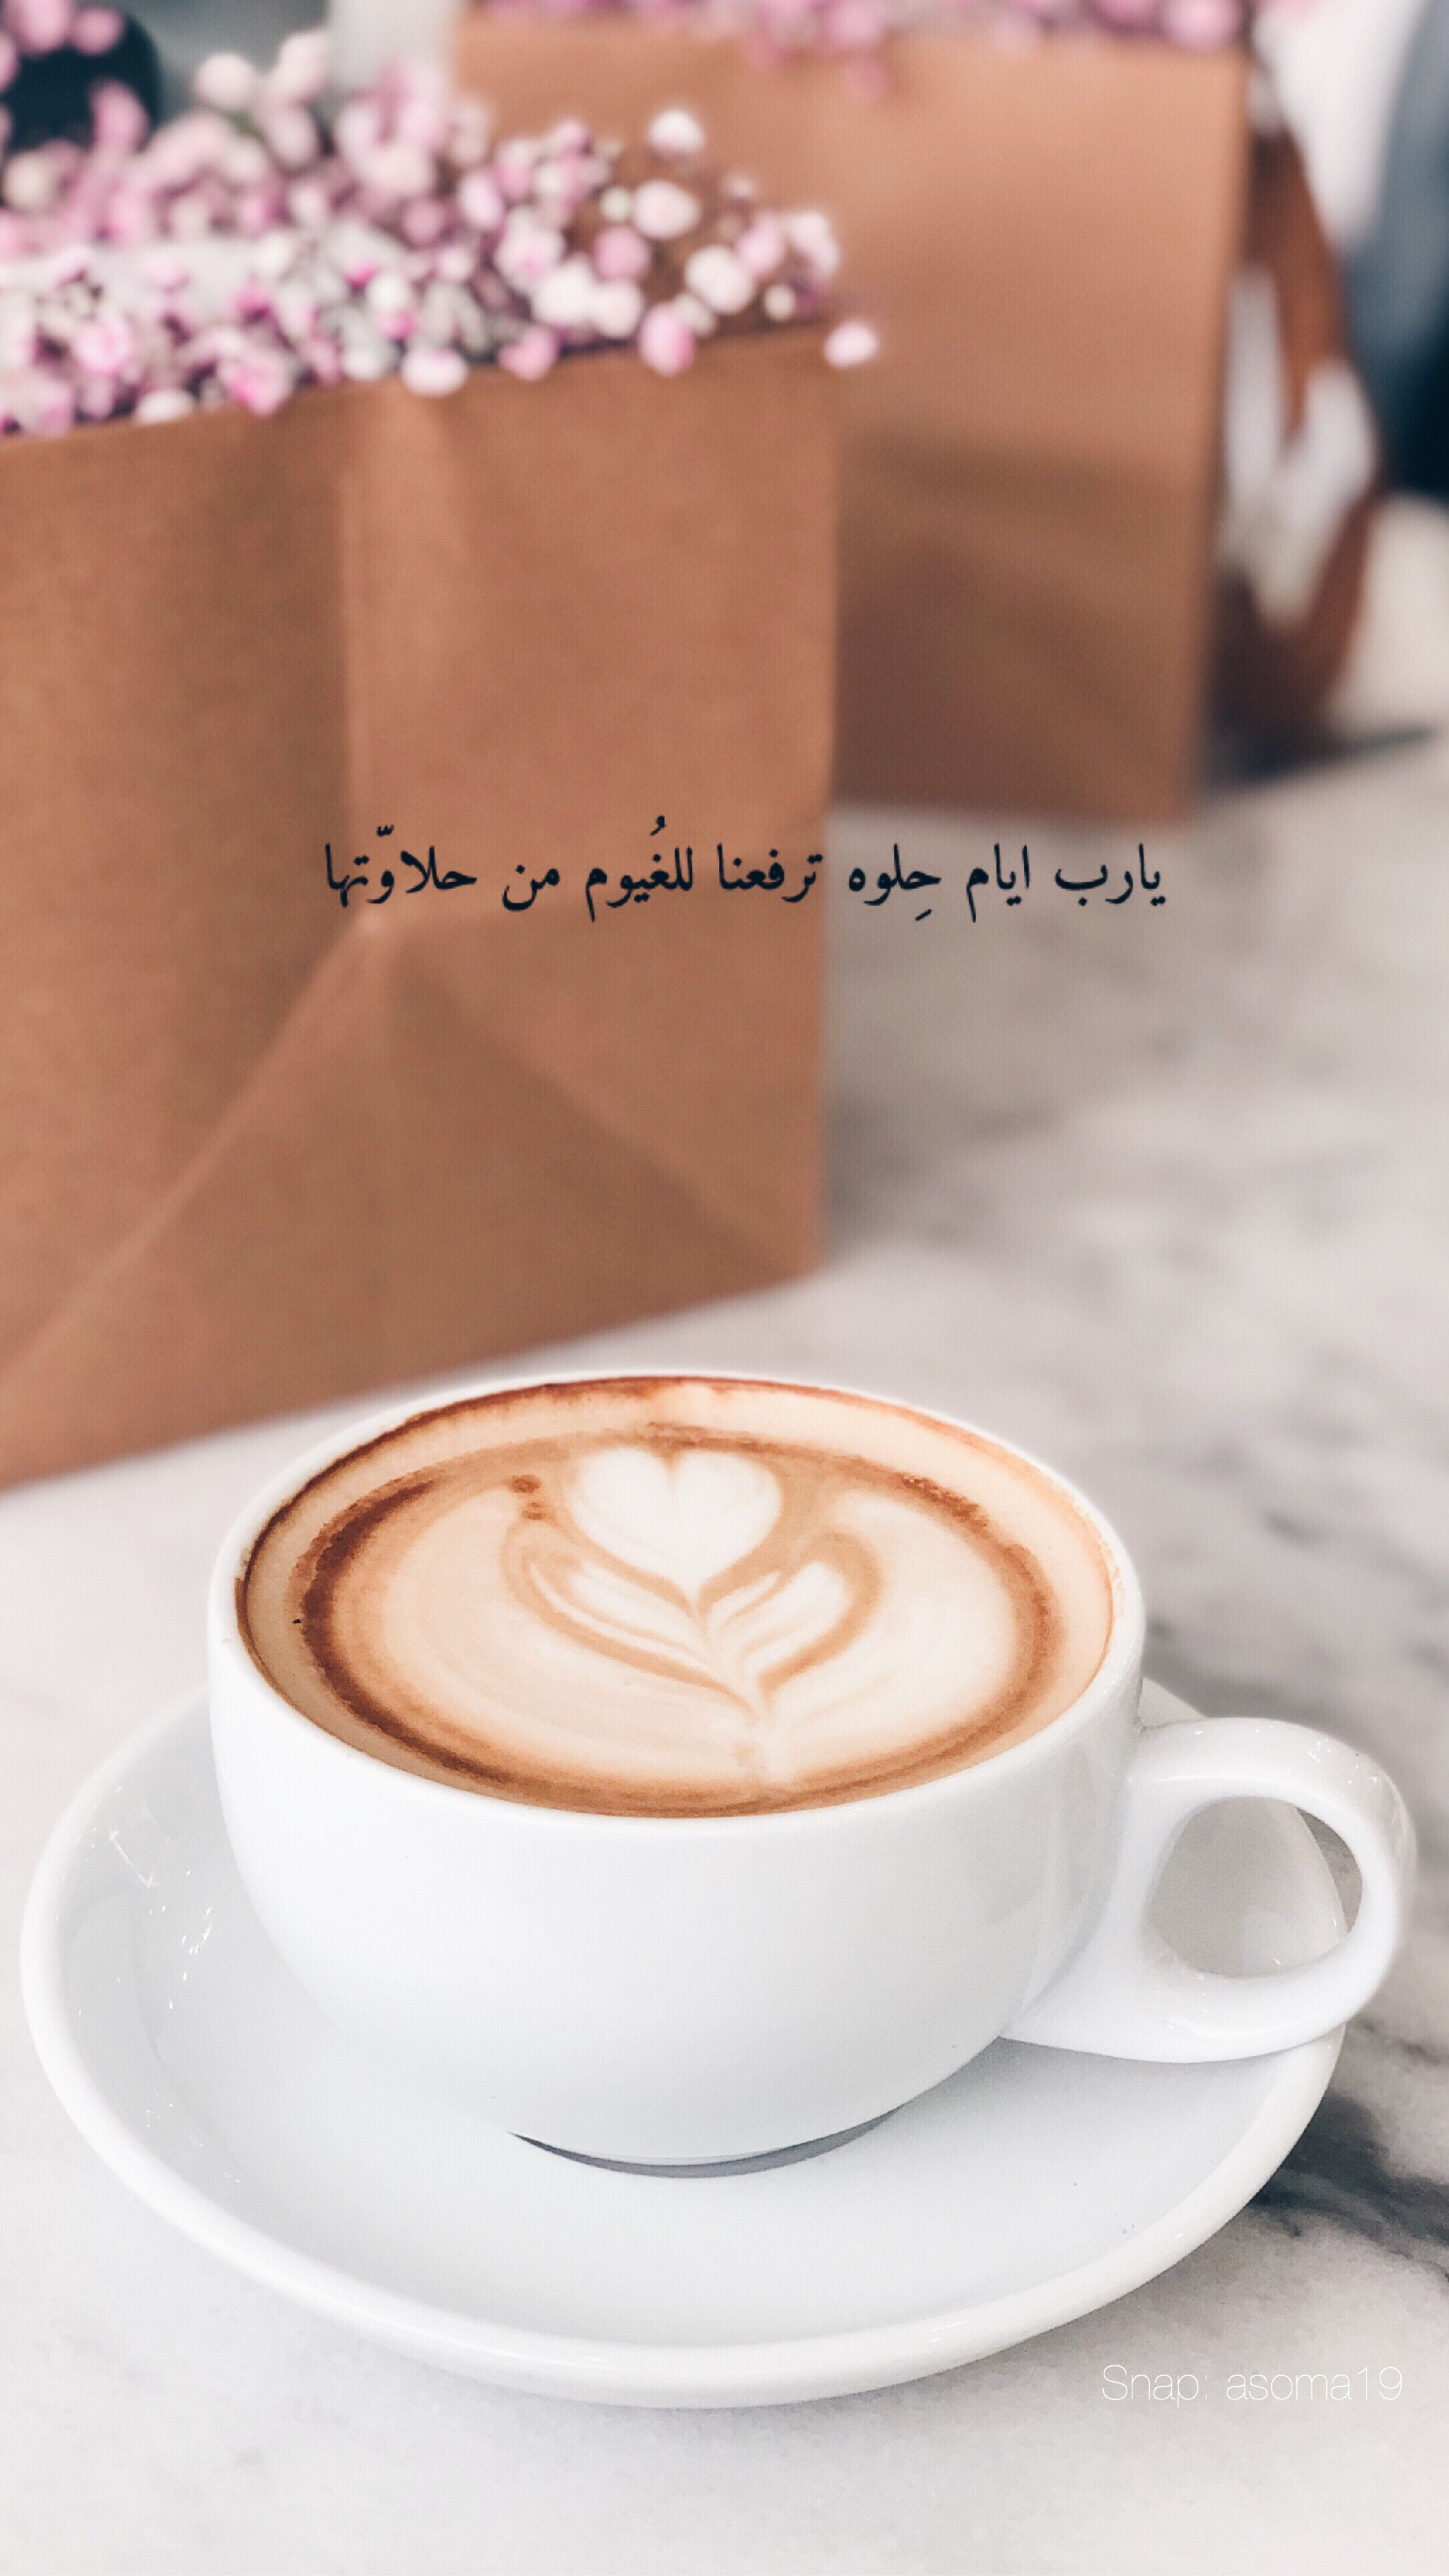 Pin By Semsem On يوميات Beautiful Arabic Words Photo Quotes Cover Photo Quotes